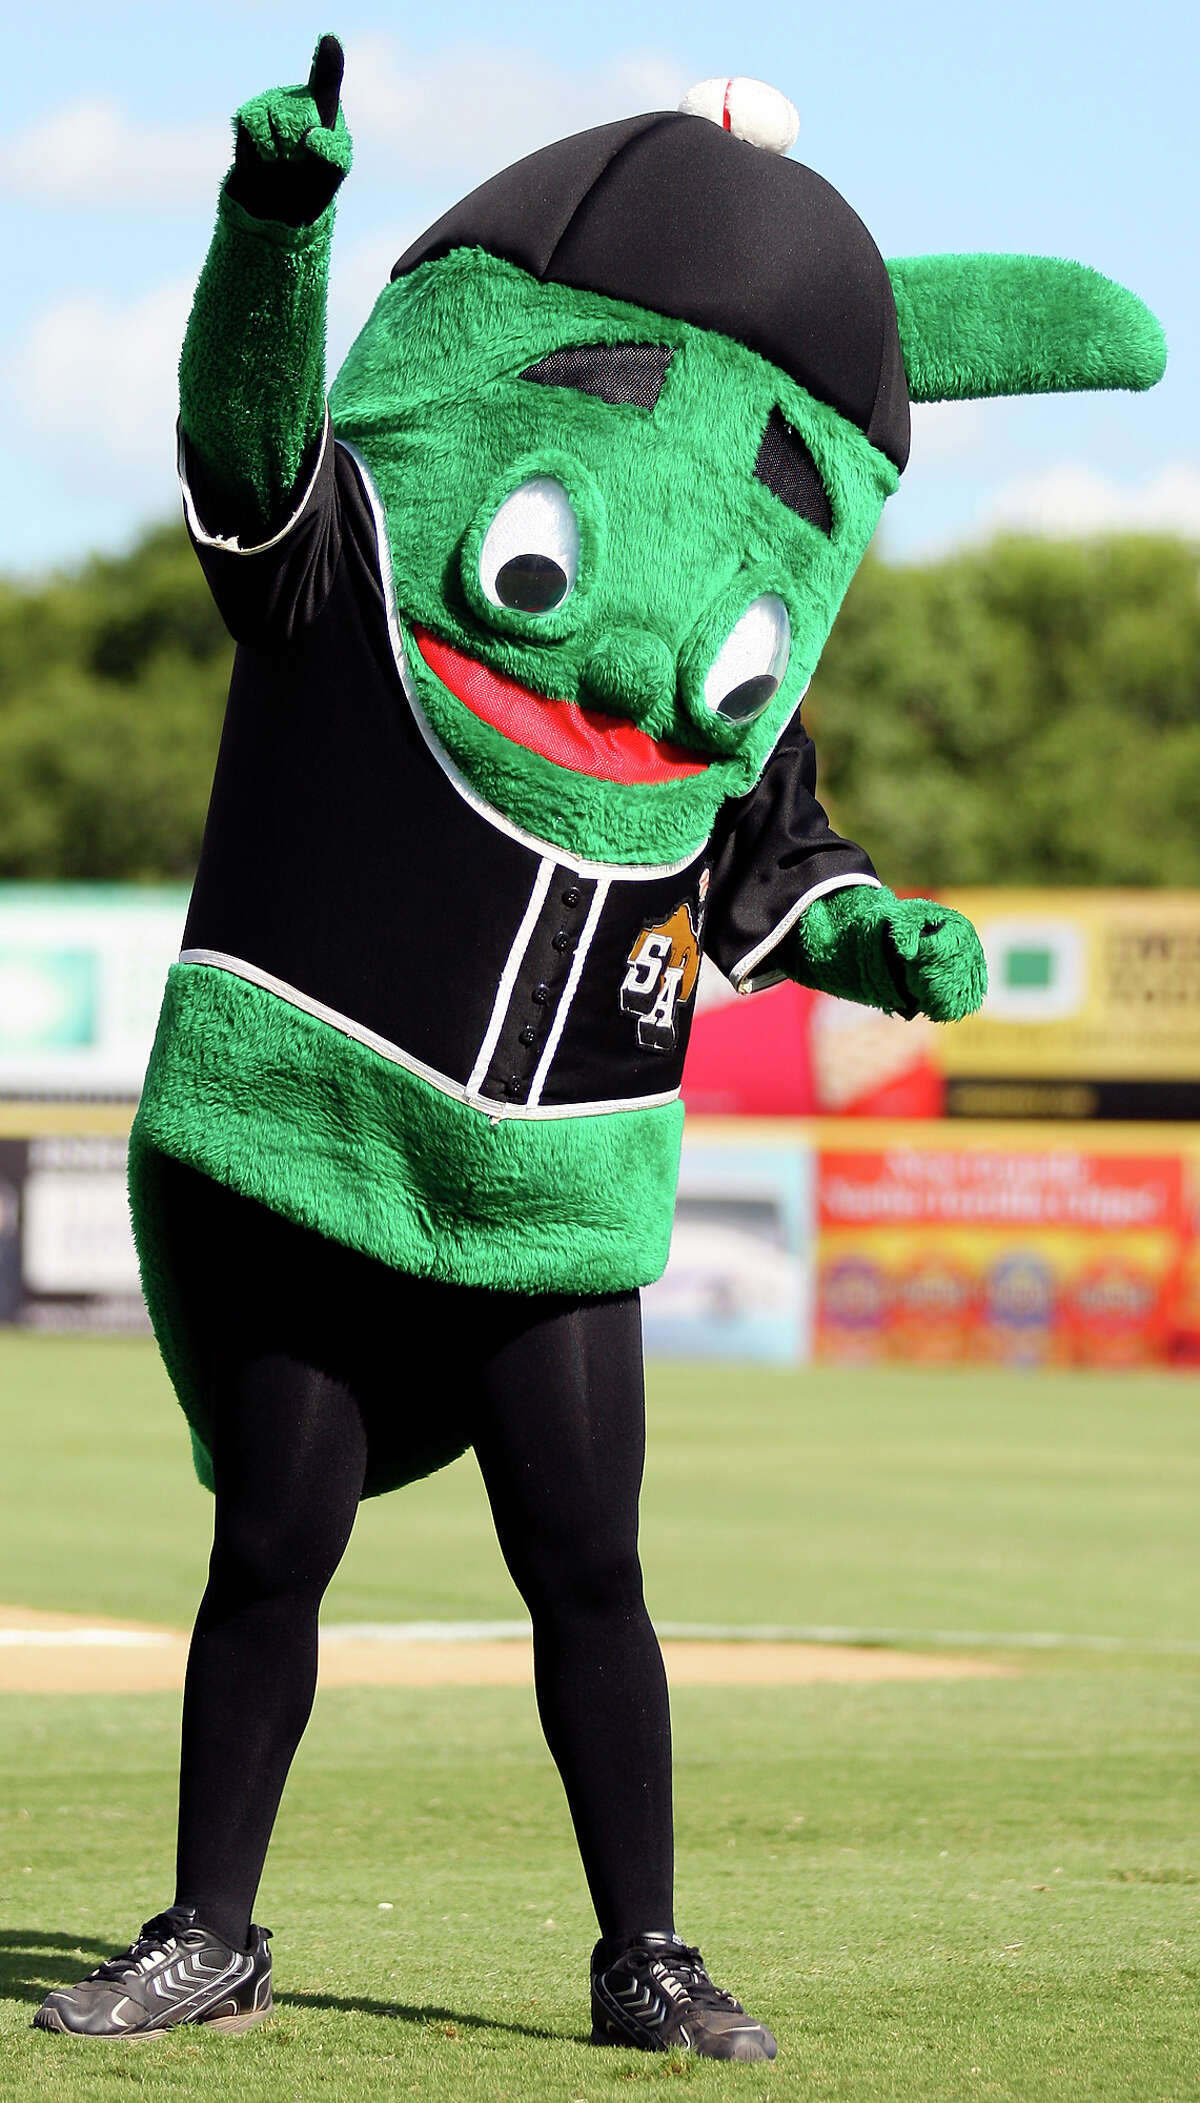 Ballapeno, the official mascot for San Antonio's minor league baseball team, the San Antonio Missions, advanced to the championship round of 2013 Minor League Mascot Mania. Check out our top reasons why you should support Ballapeno to become the top MiLB mascot, and vote for him here. Voting ends Aug. 8!